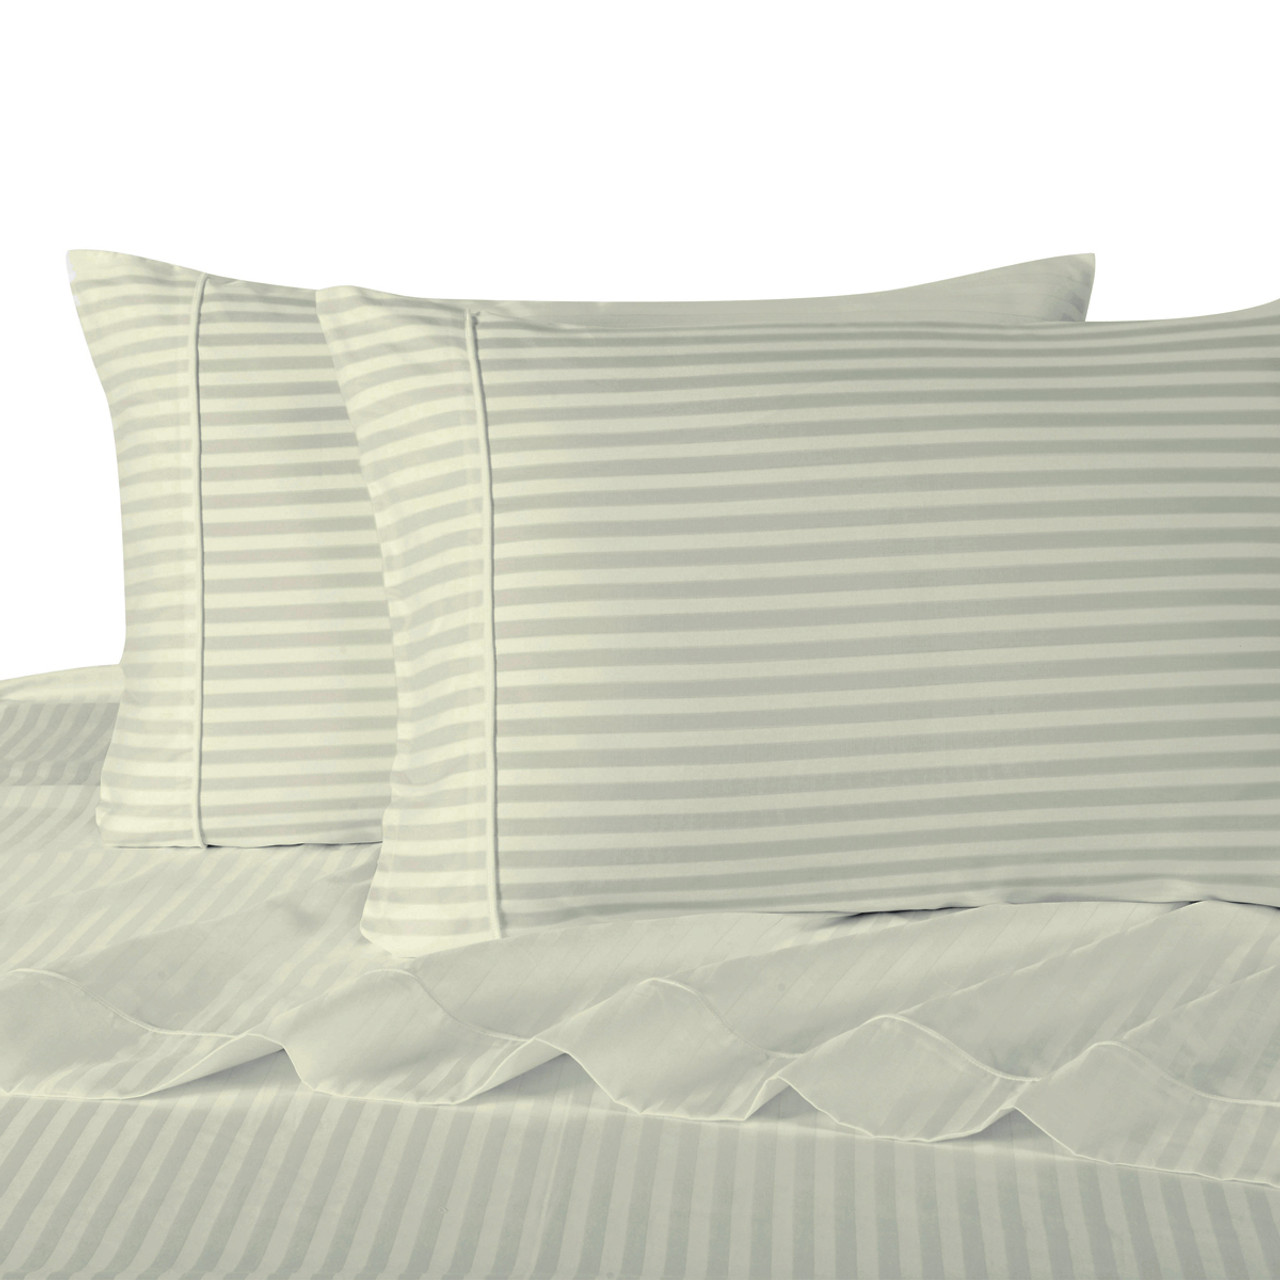 ... Ivory Twin Extra Long Sheets 100% Cotton 500 Thread Count Damask  Striped ...